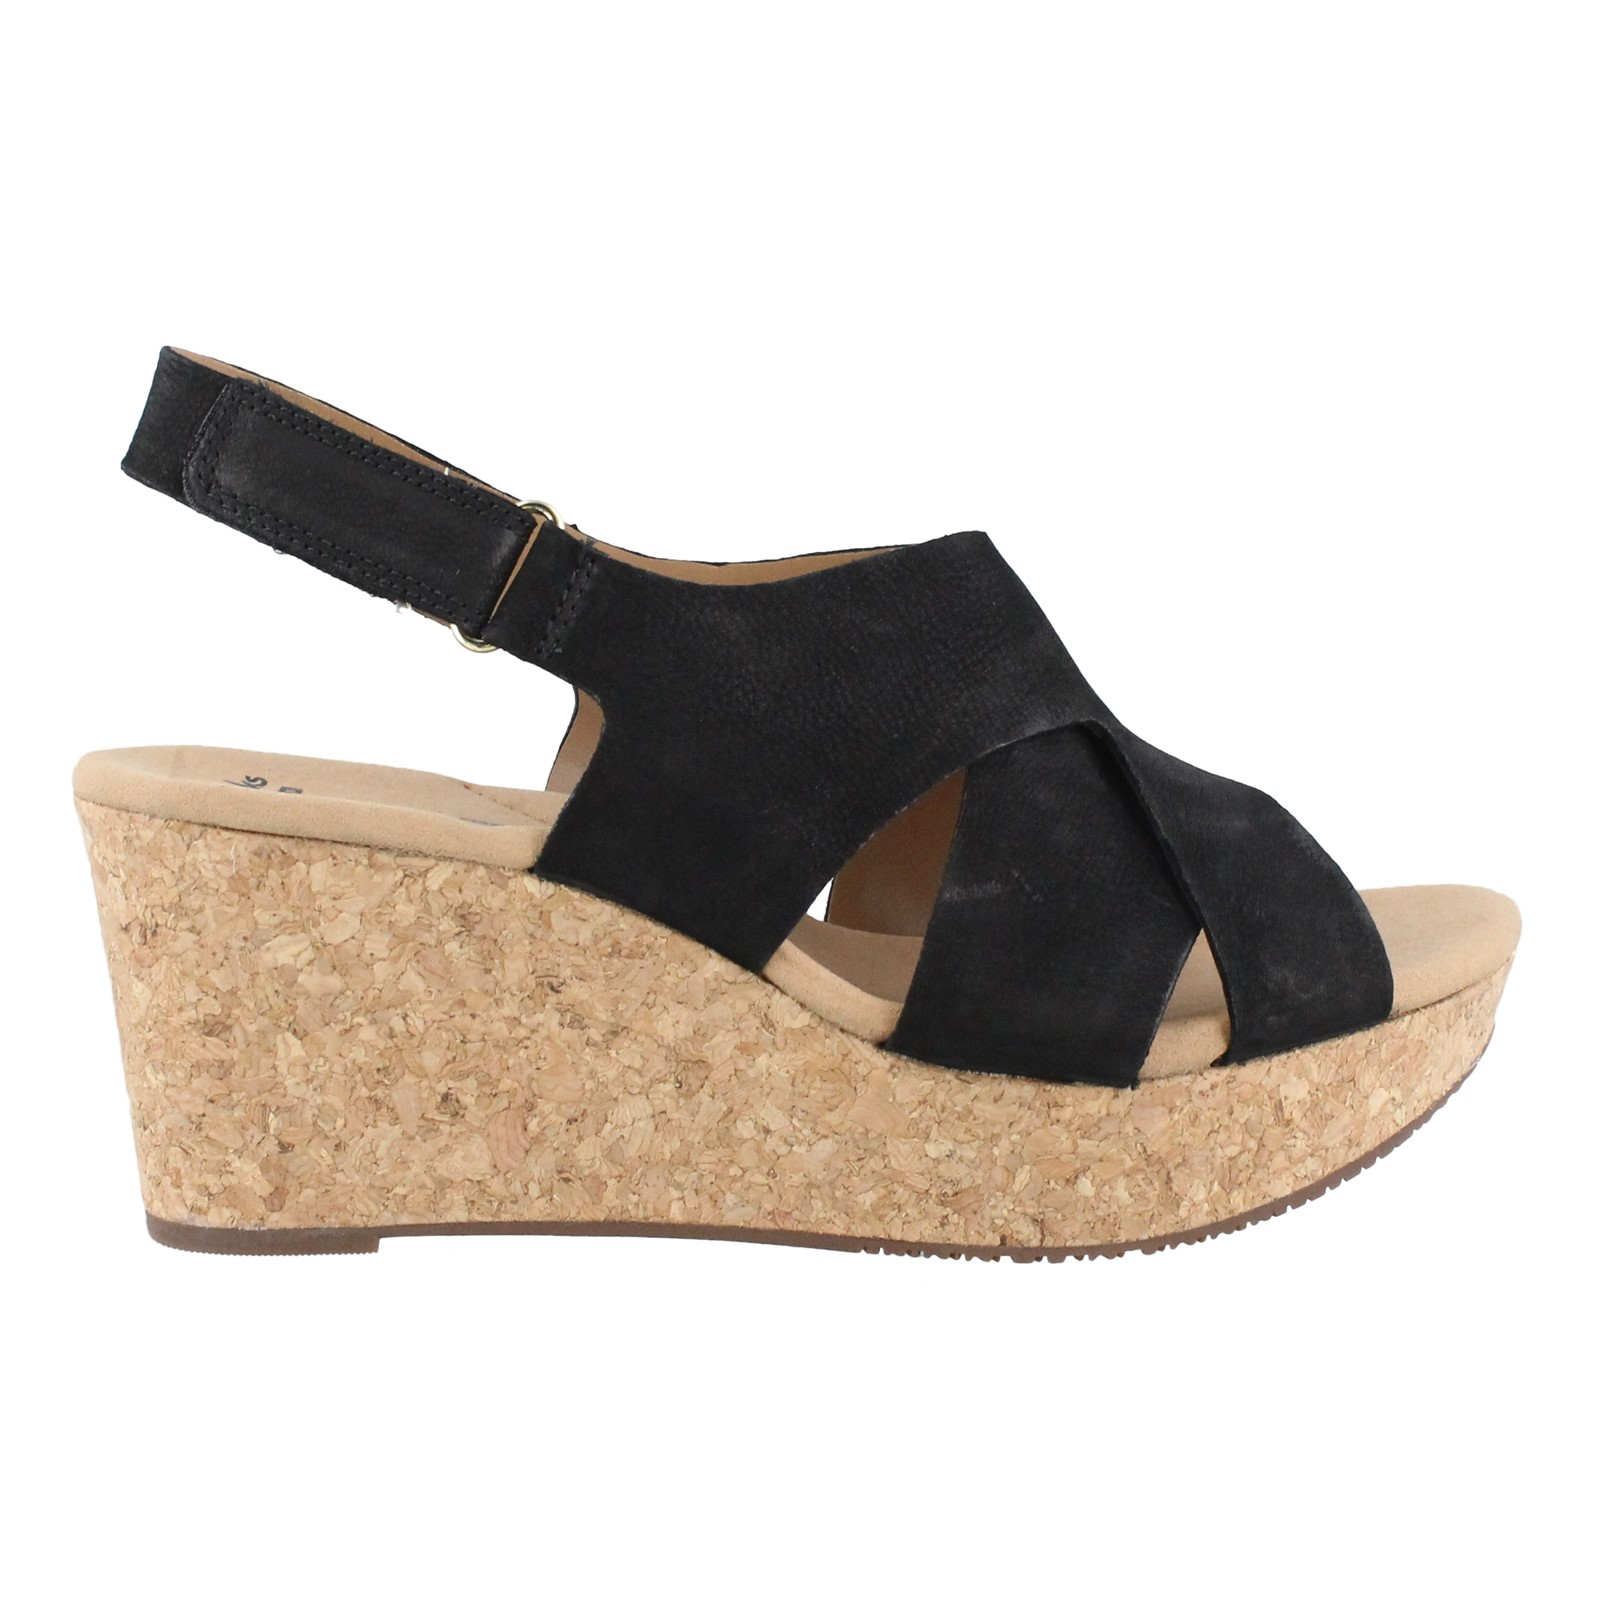 Women's Clarks, Annadel Fareda Mid Heel Wedge Sandals